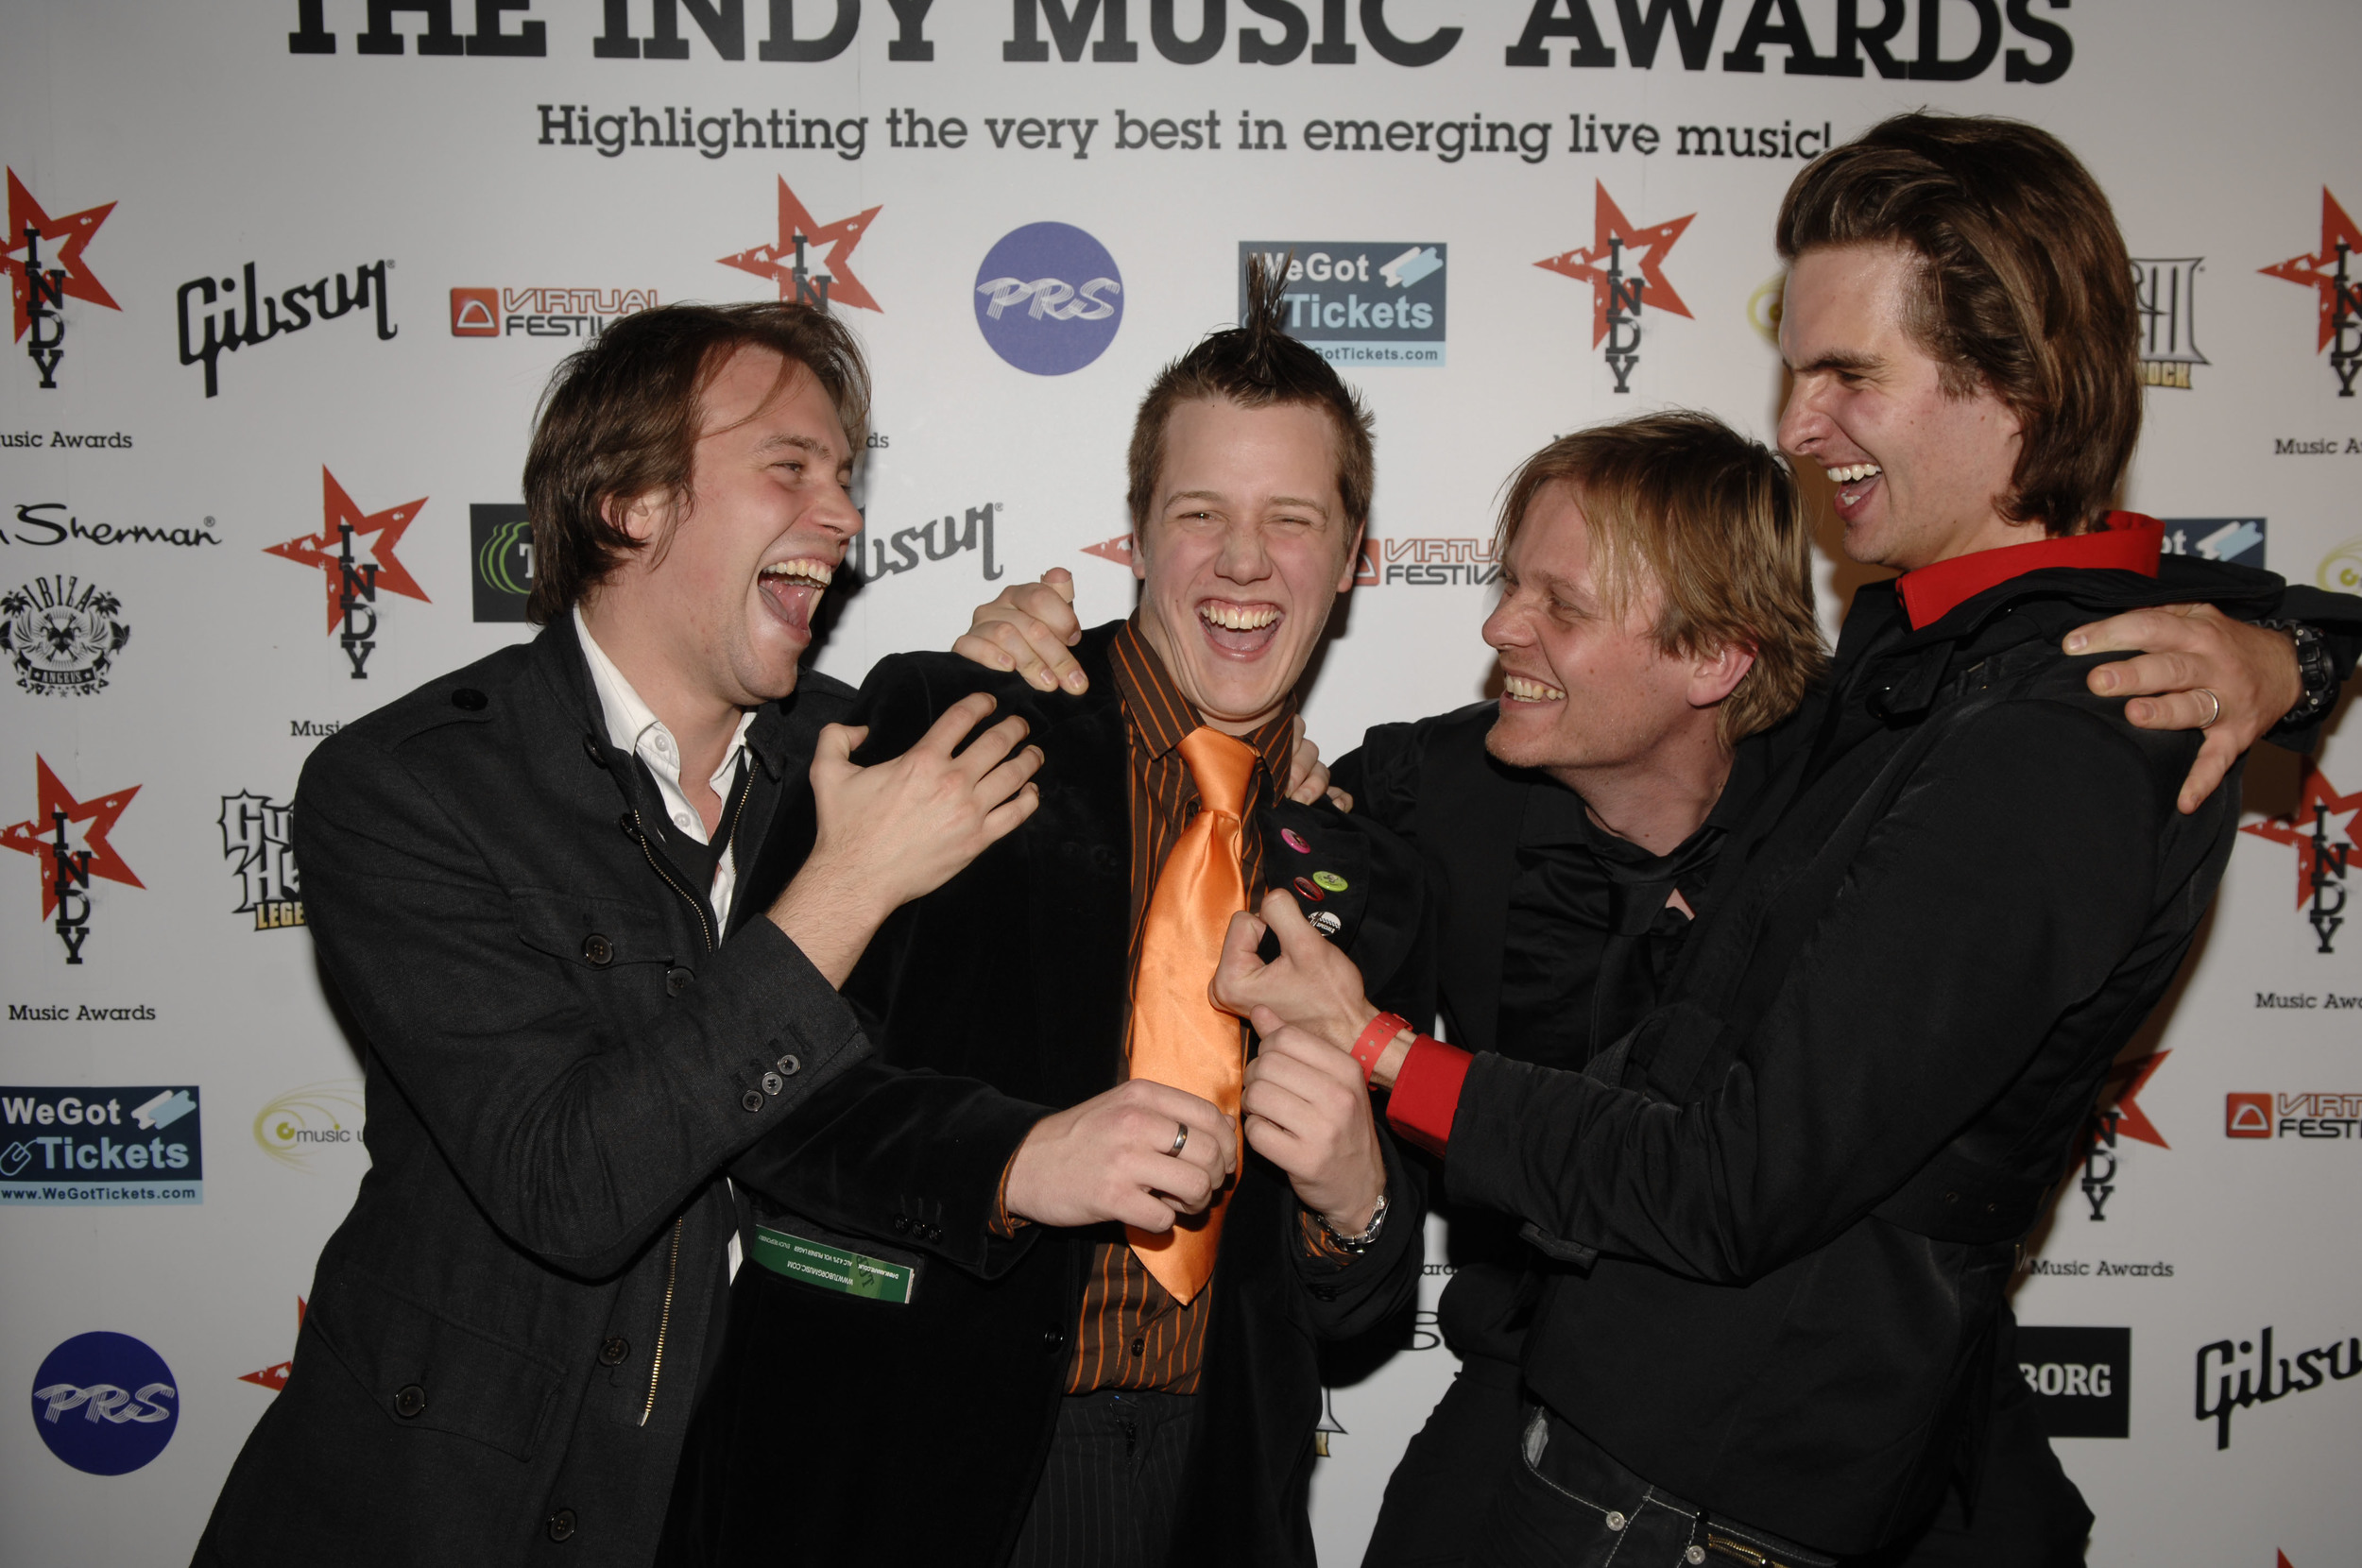 Press enclosure at the Indy Music Awards